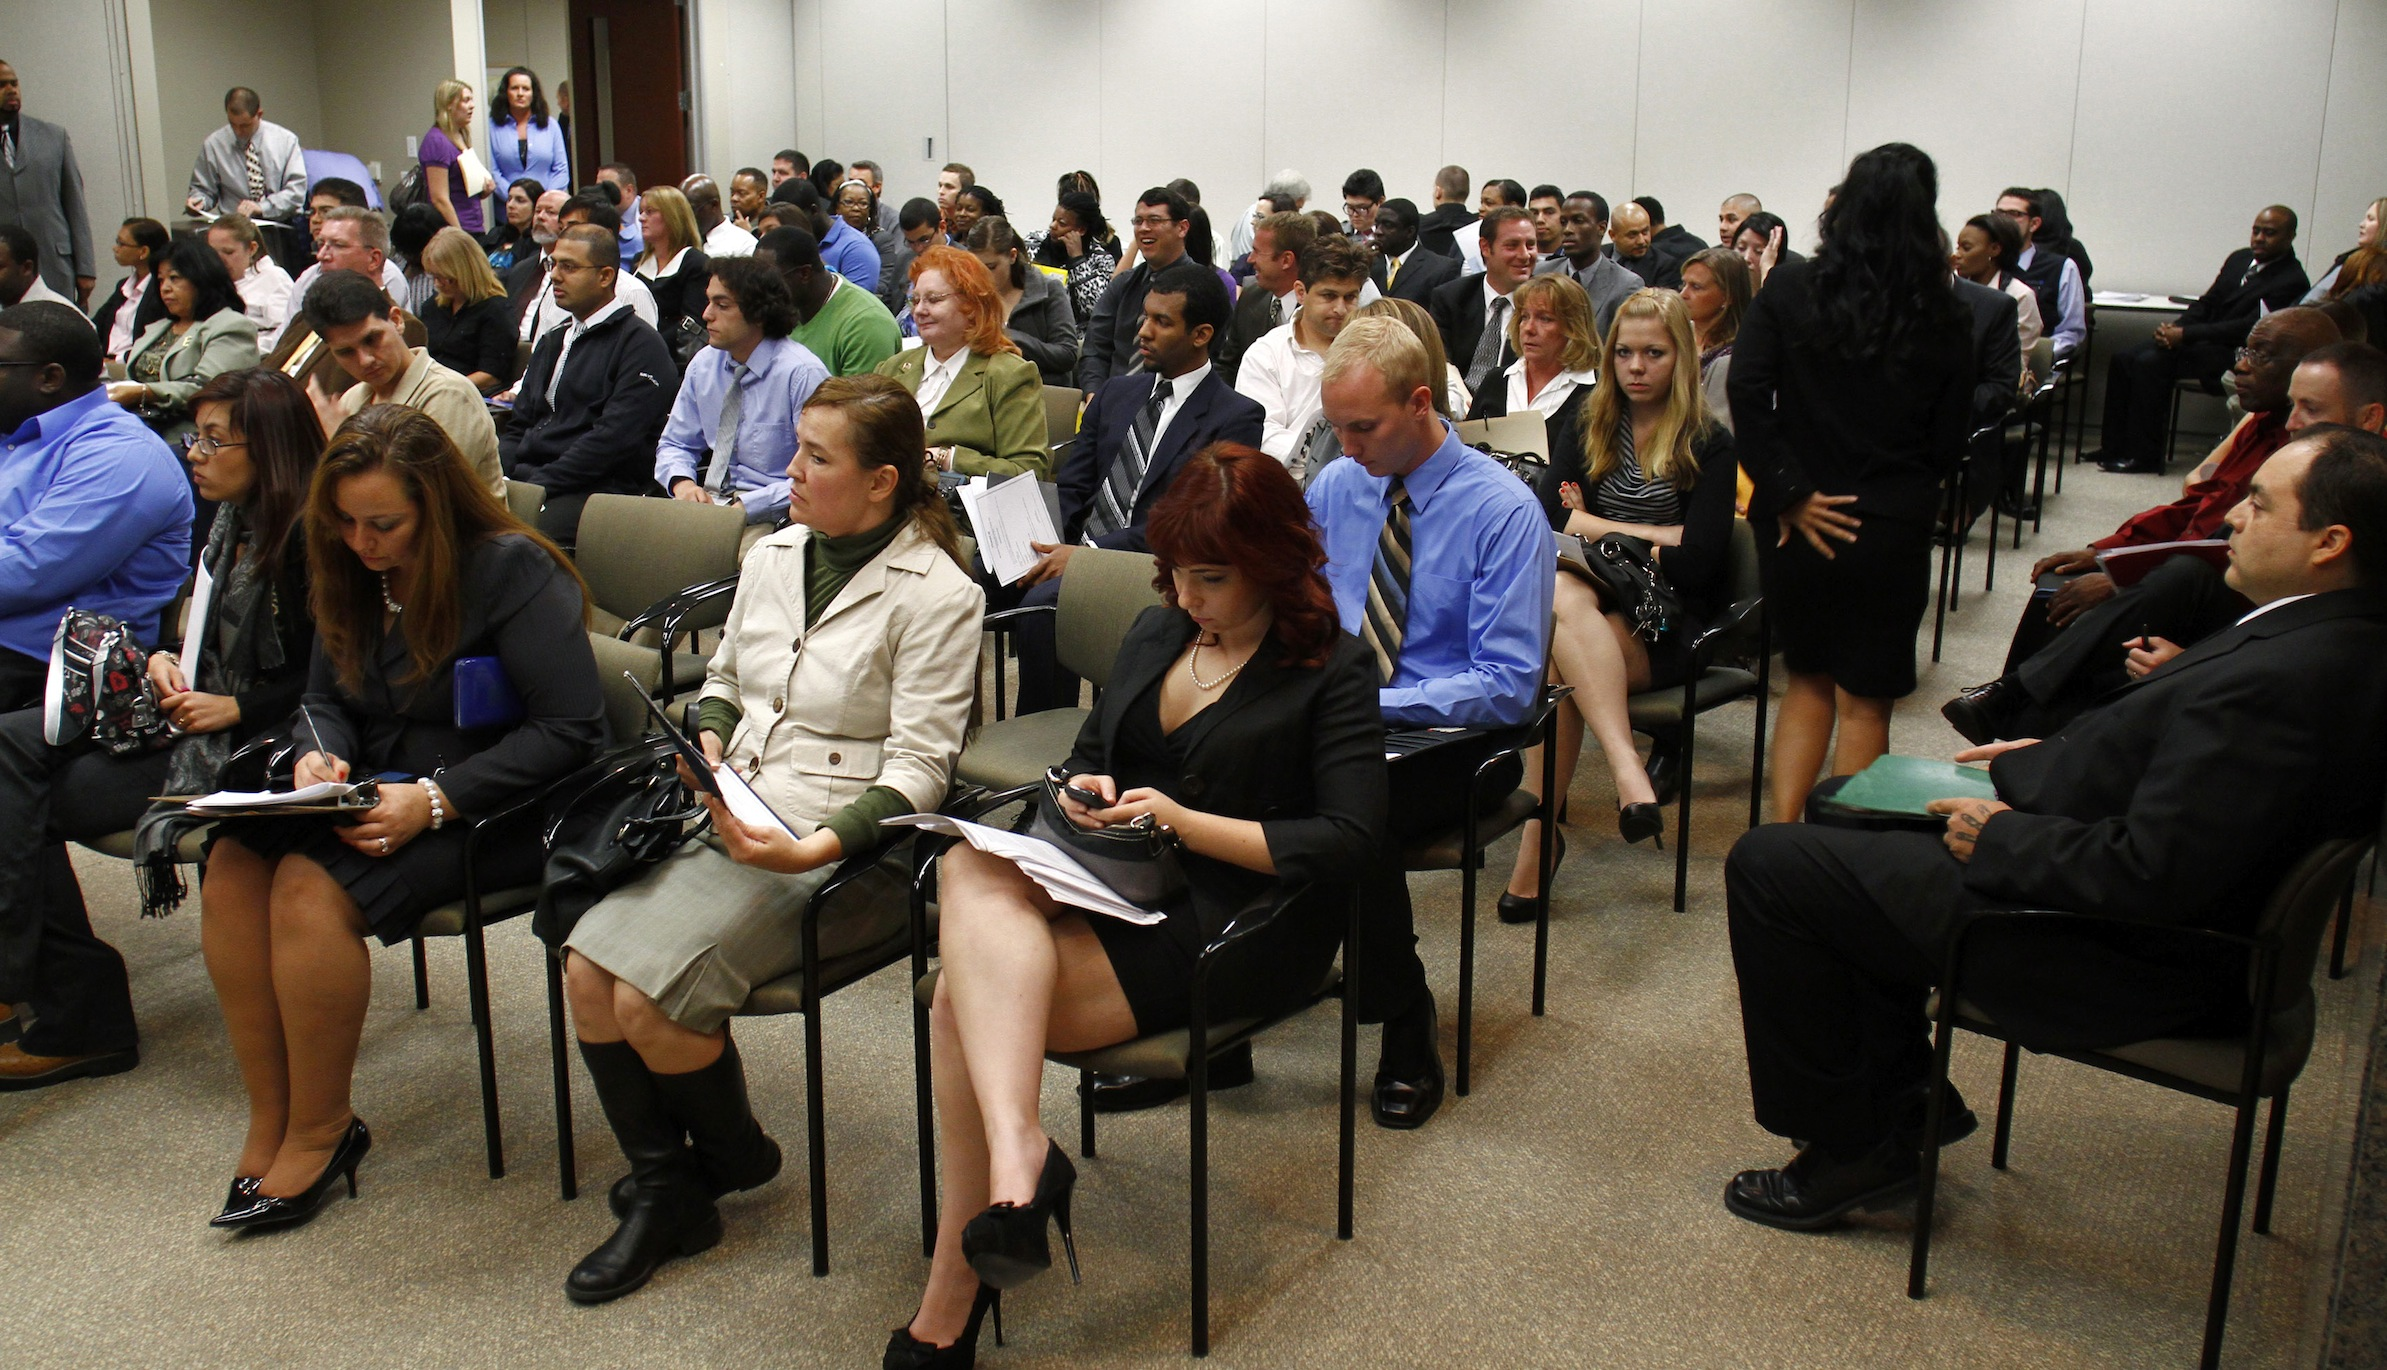 People attend the Chase Bank Veterans Day job fair in Phoenix, Arizona November 11, 2011. Chase Bank plans on hiring over 300 new hires, including veterans, for their open positions, according to local media. REUTERS/Joshua Lott (UNITED STATES - Tags: BUSINESS EMPLOYMENT SOCIETY) - RTR2TWH0